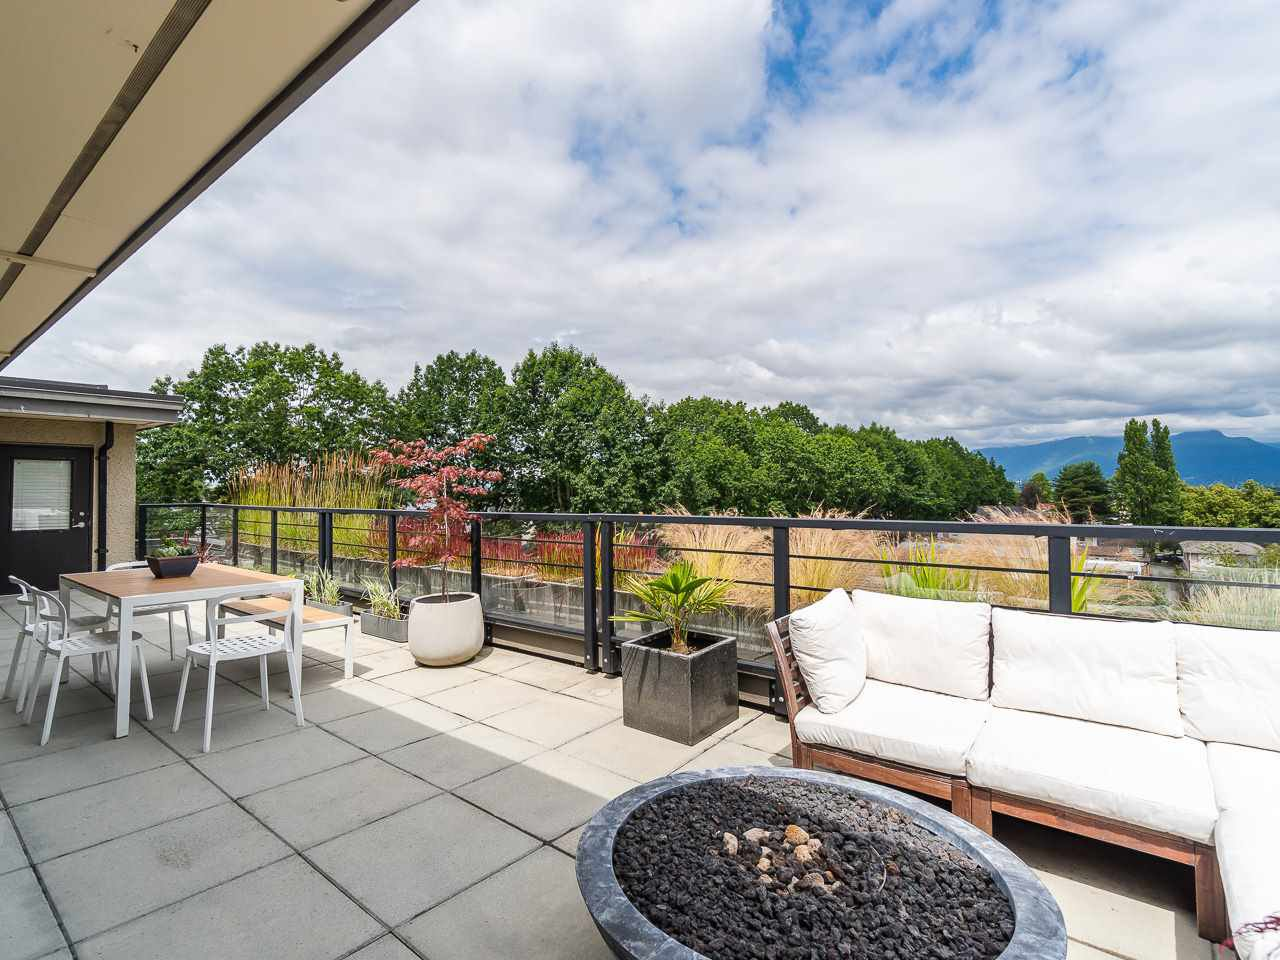 750 sq ft patio with unobstructed view of the Mountains